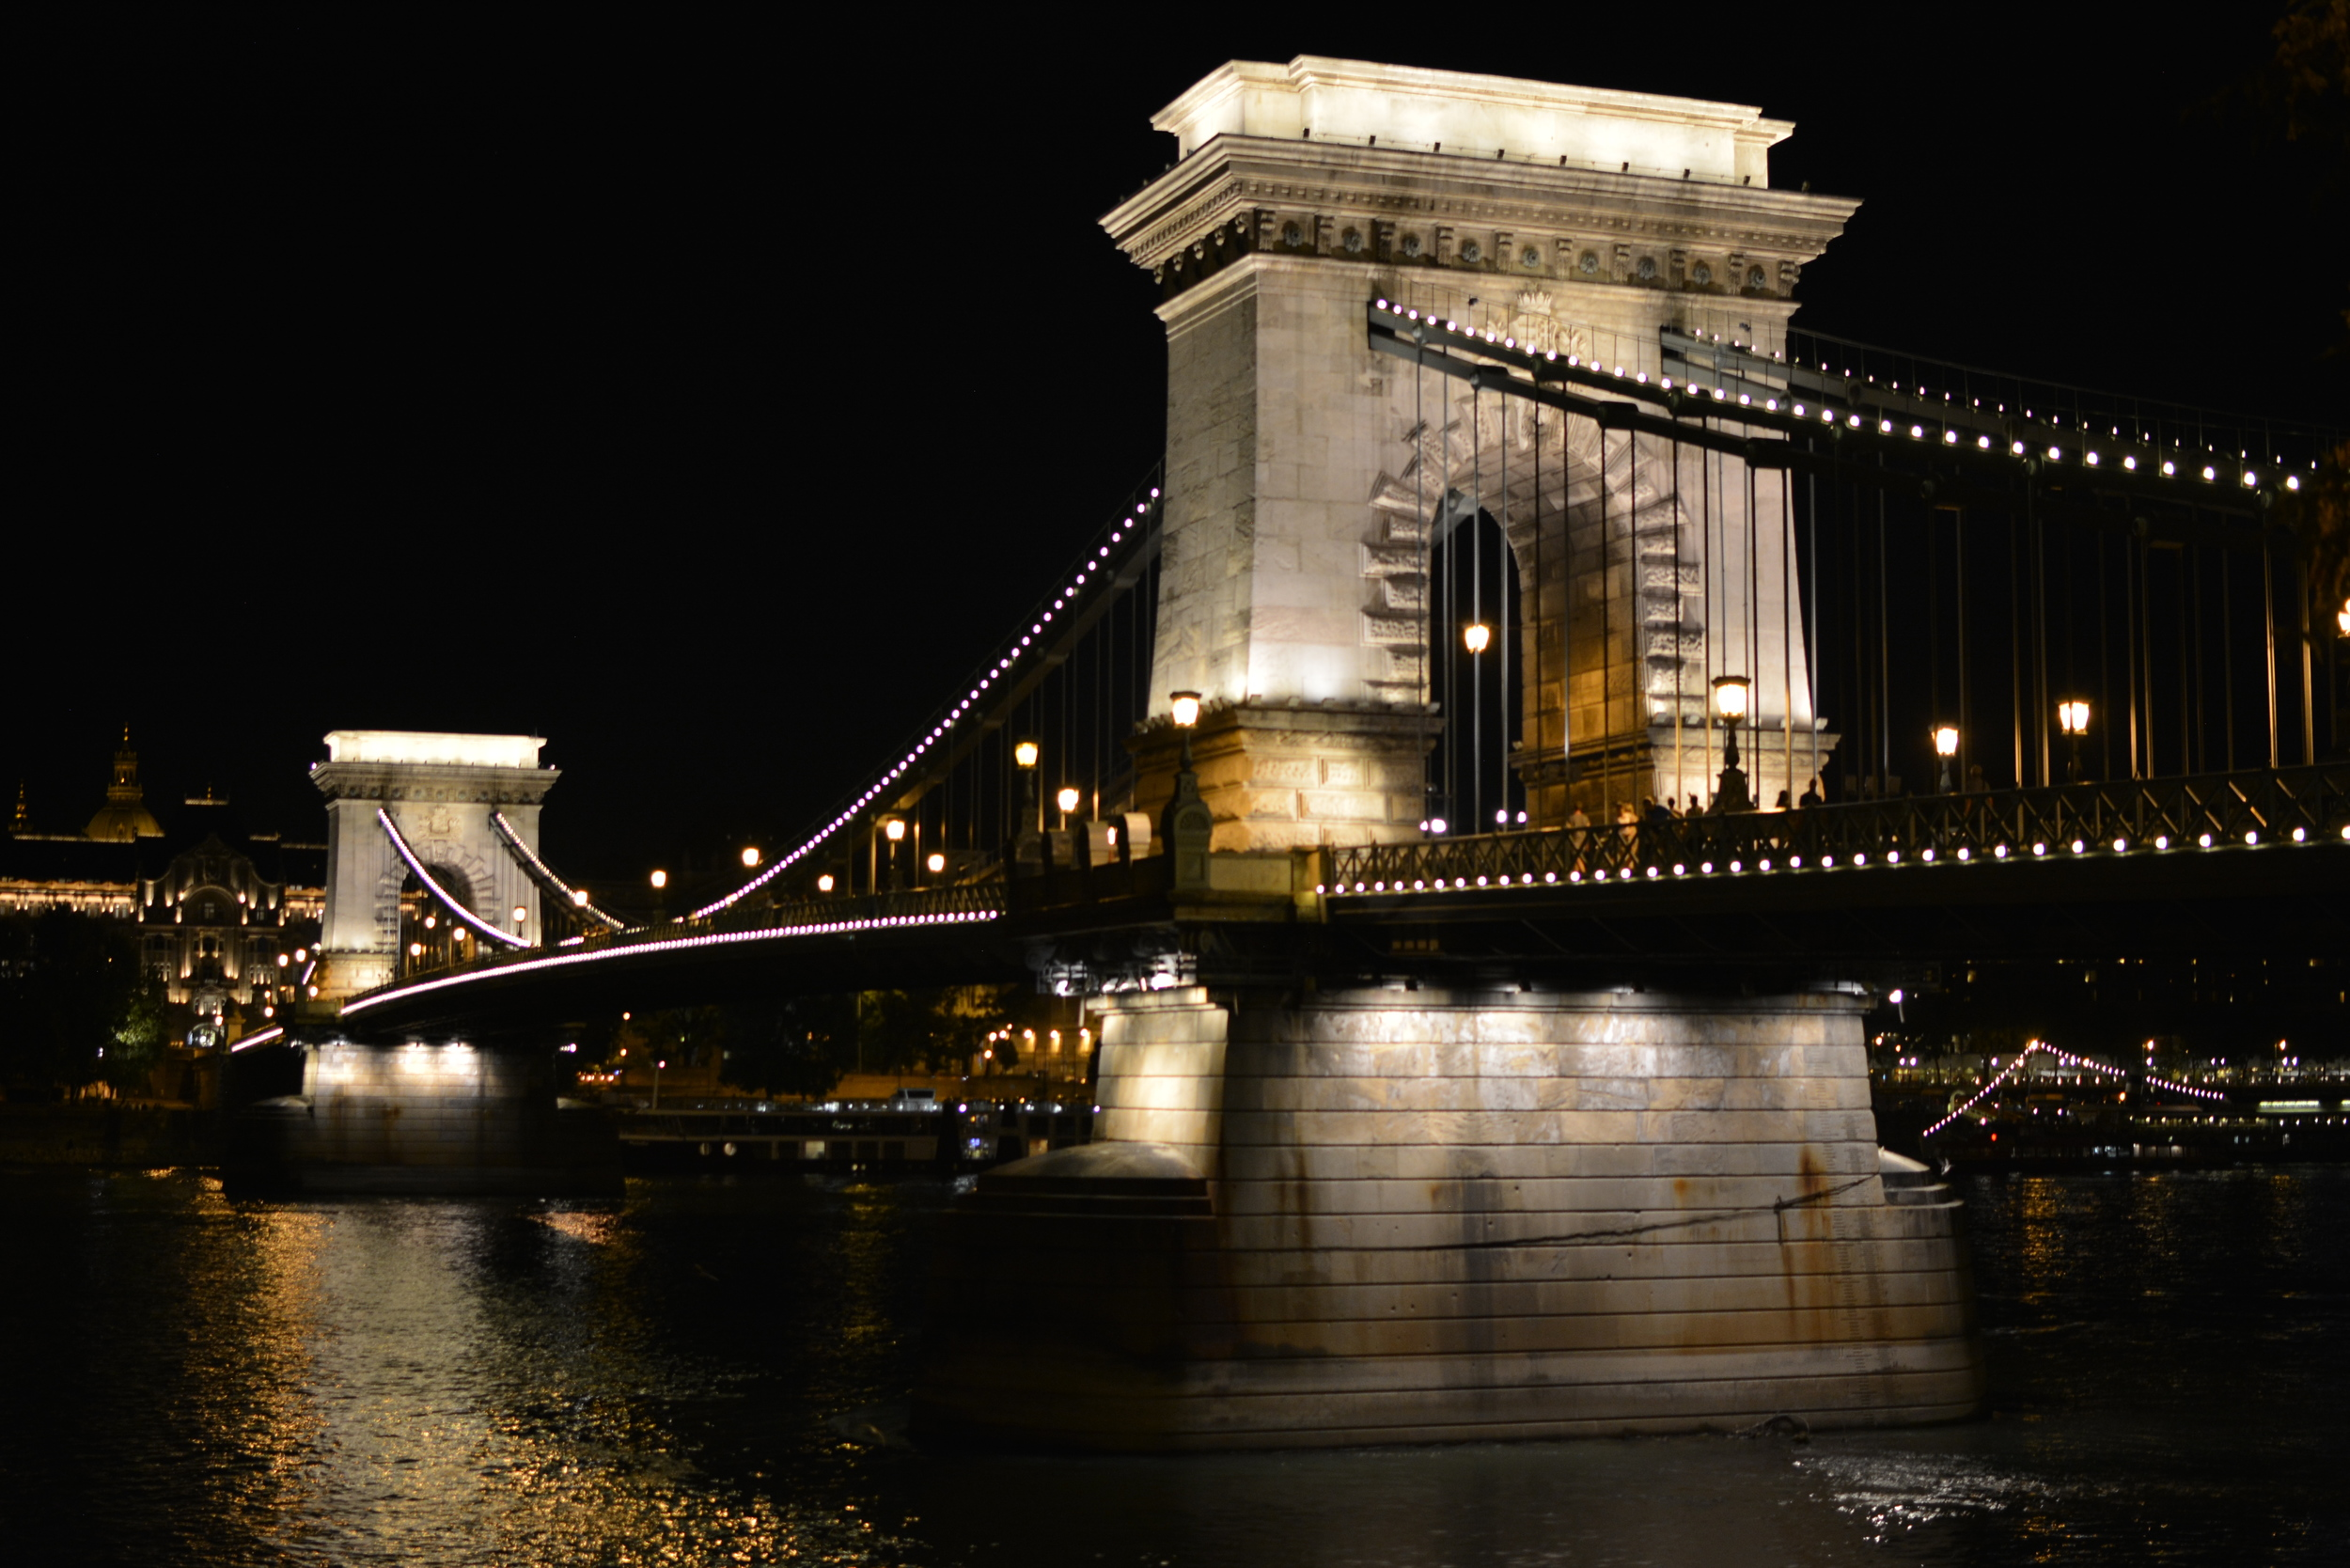 The Chain Bridge spans the Danube linking Buda and Pest, the western and eastern side of the capital city.